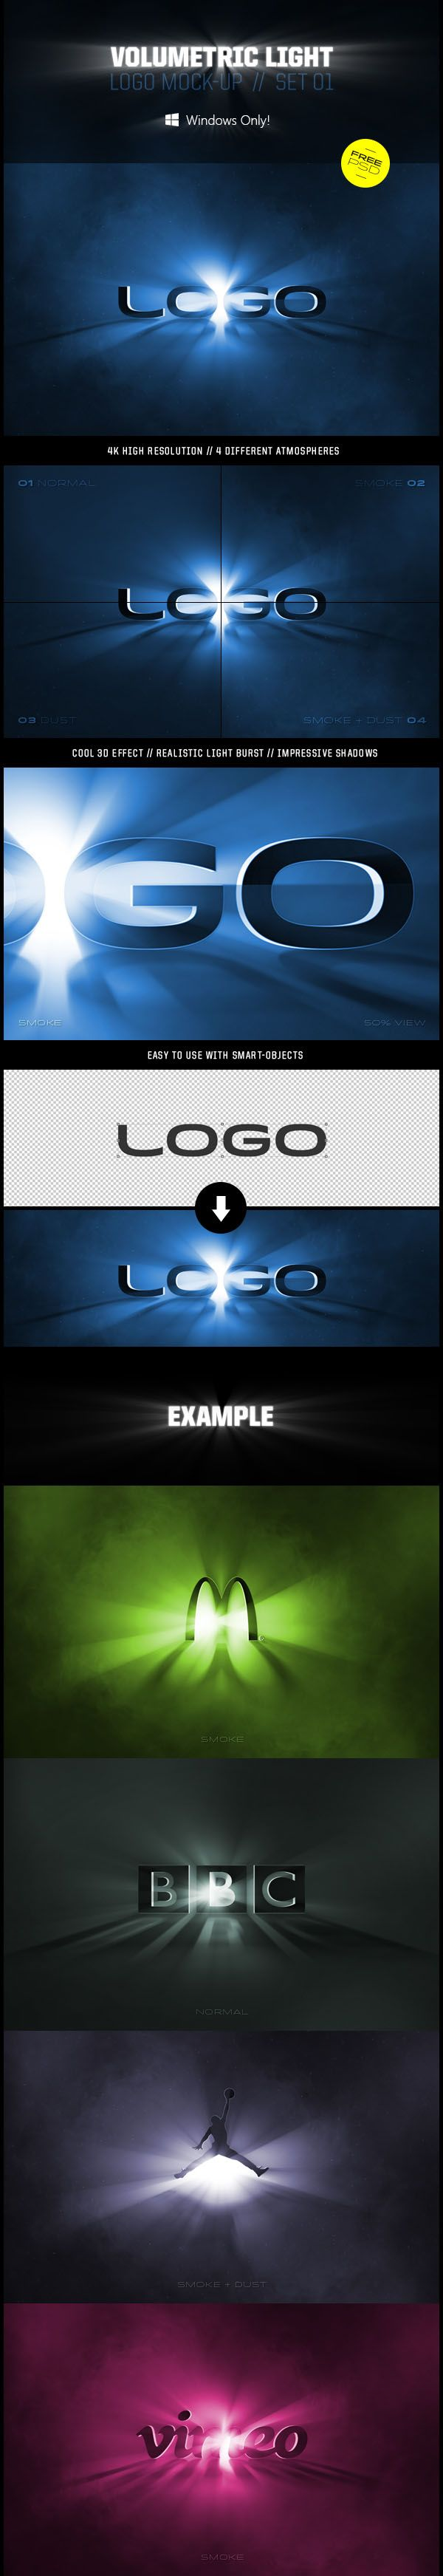 volumetric logo